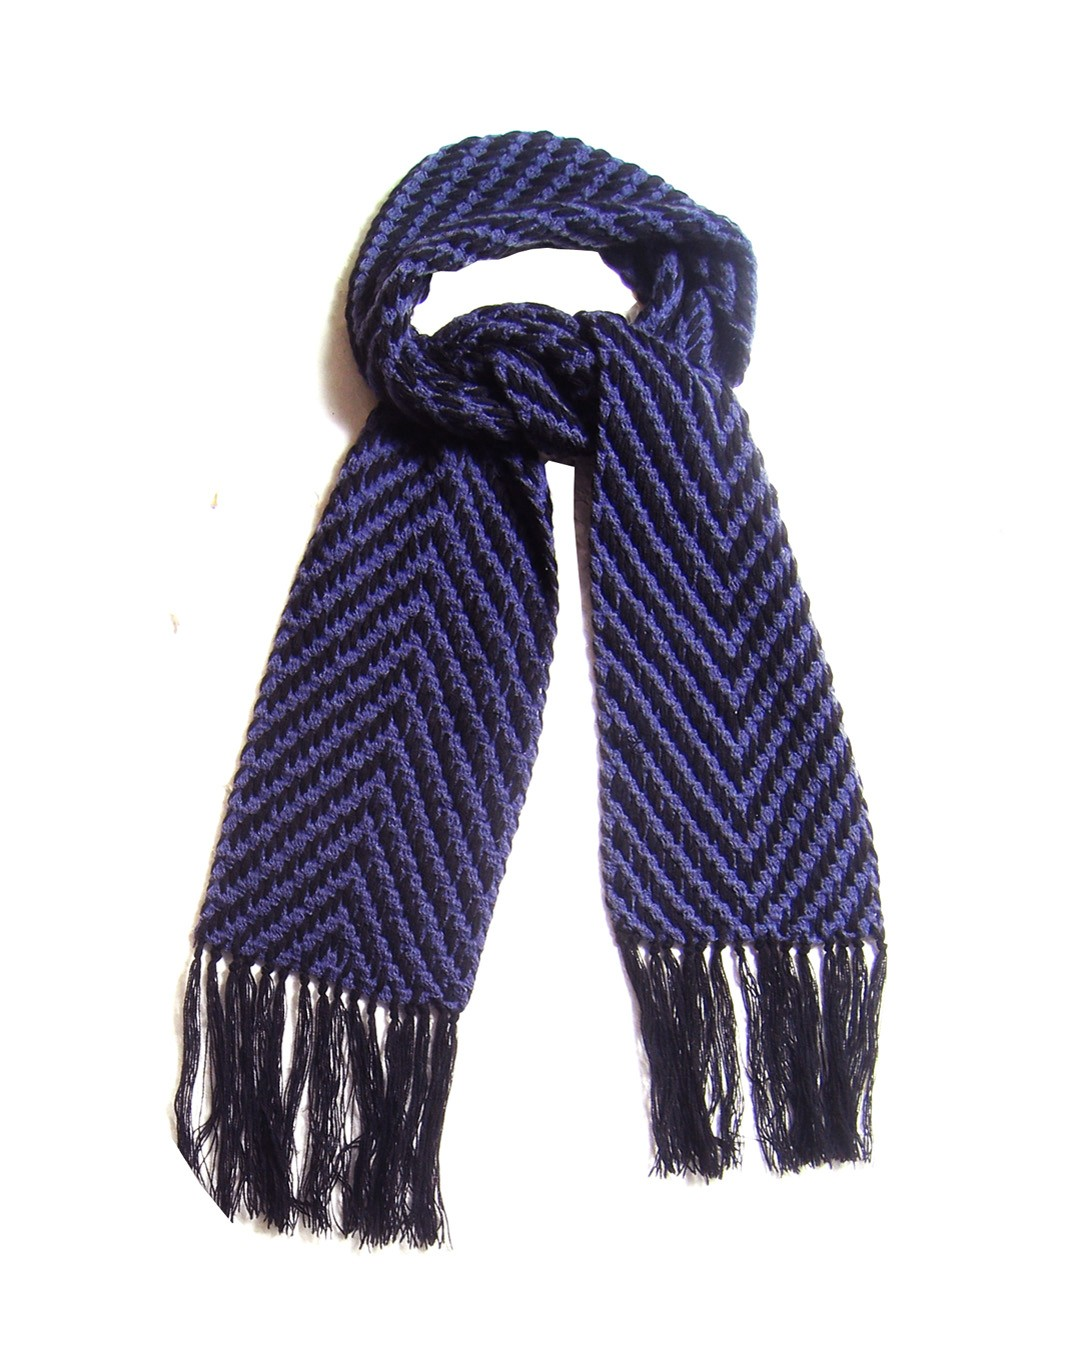 fair true fair trade zig zag purple knited scarf w 1 2 1 30 Days of Ethical Fashion   Fair + True